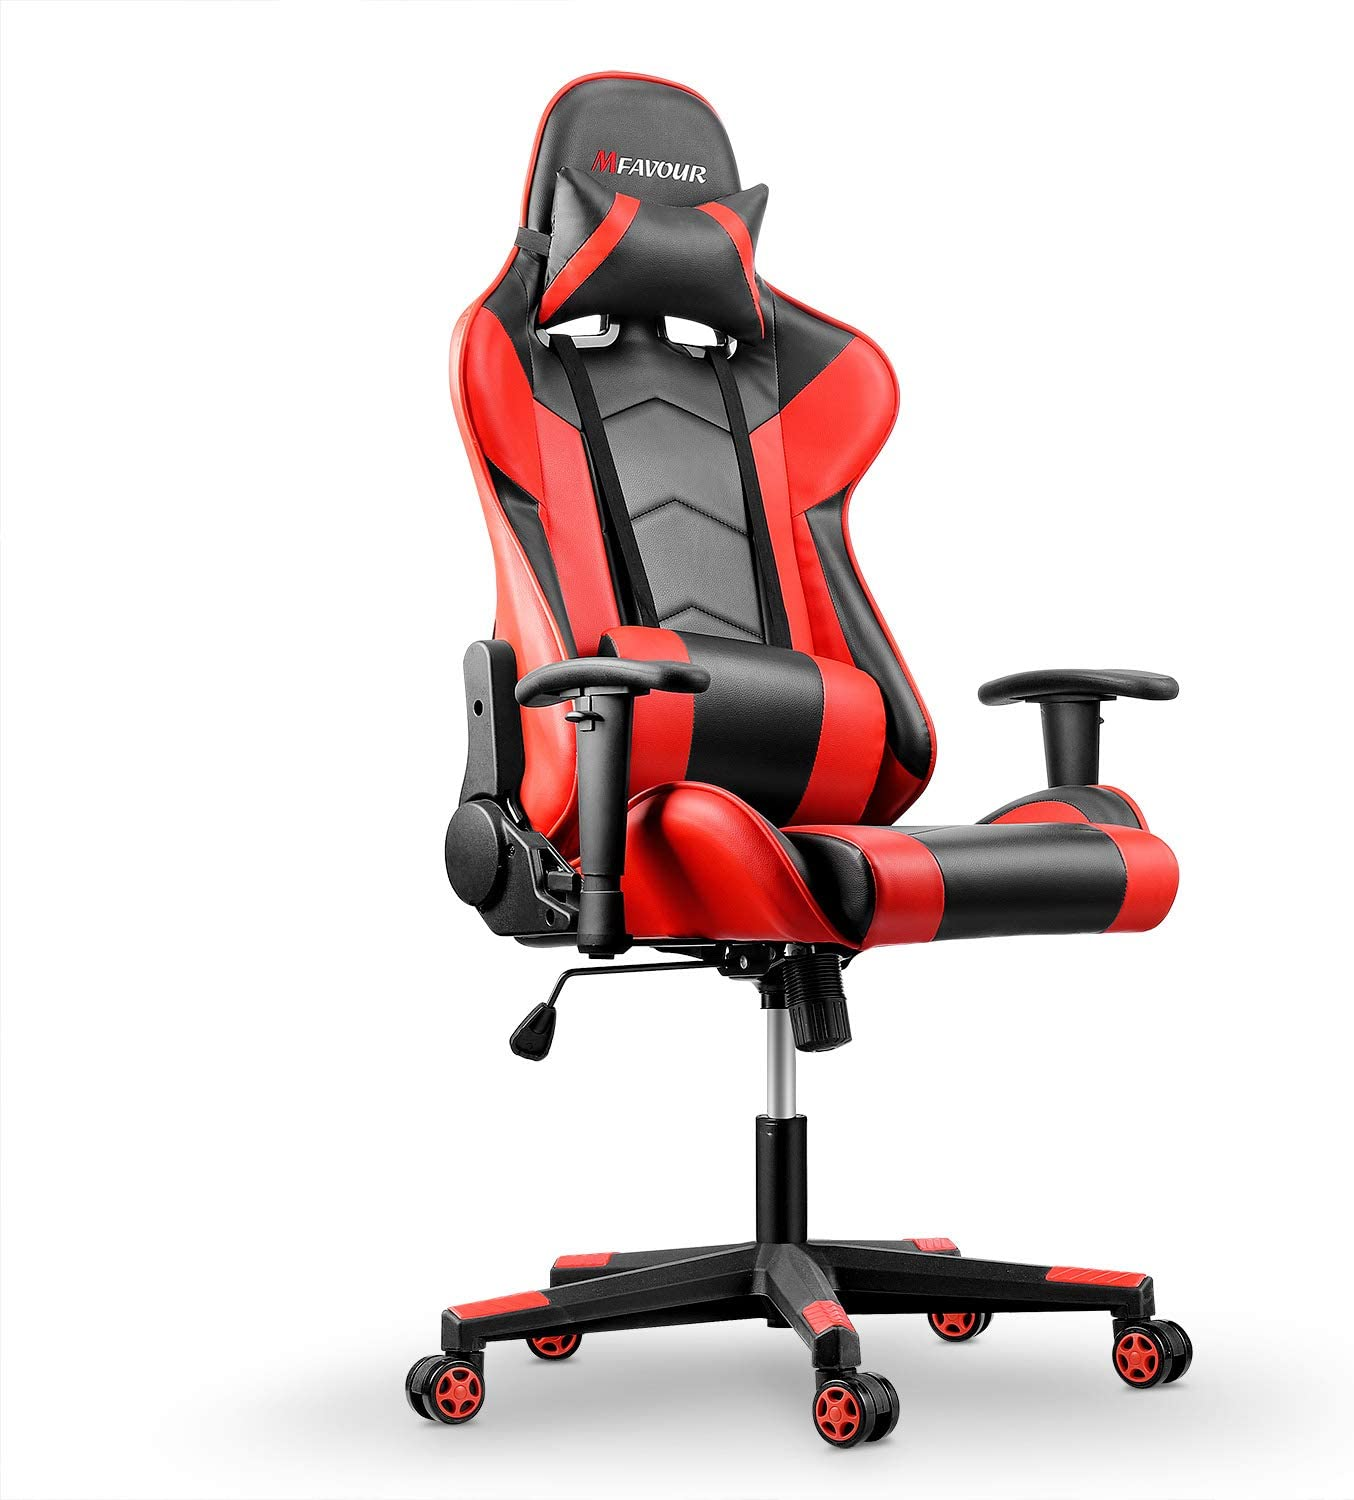 Mfavour Gaming Chair Pc Office Chair High Back Racing Style Executive Computer Gaming Office Chair With Adjustable Armrest And Tilt Funtion Red Amazon Co Uk Kitchen Home